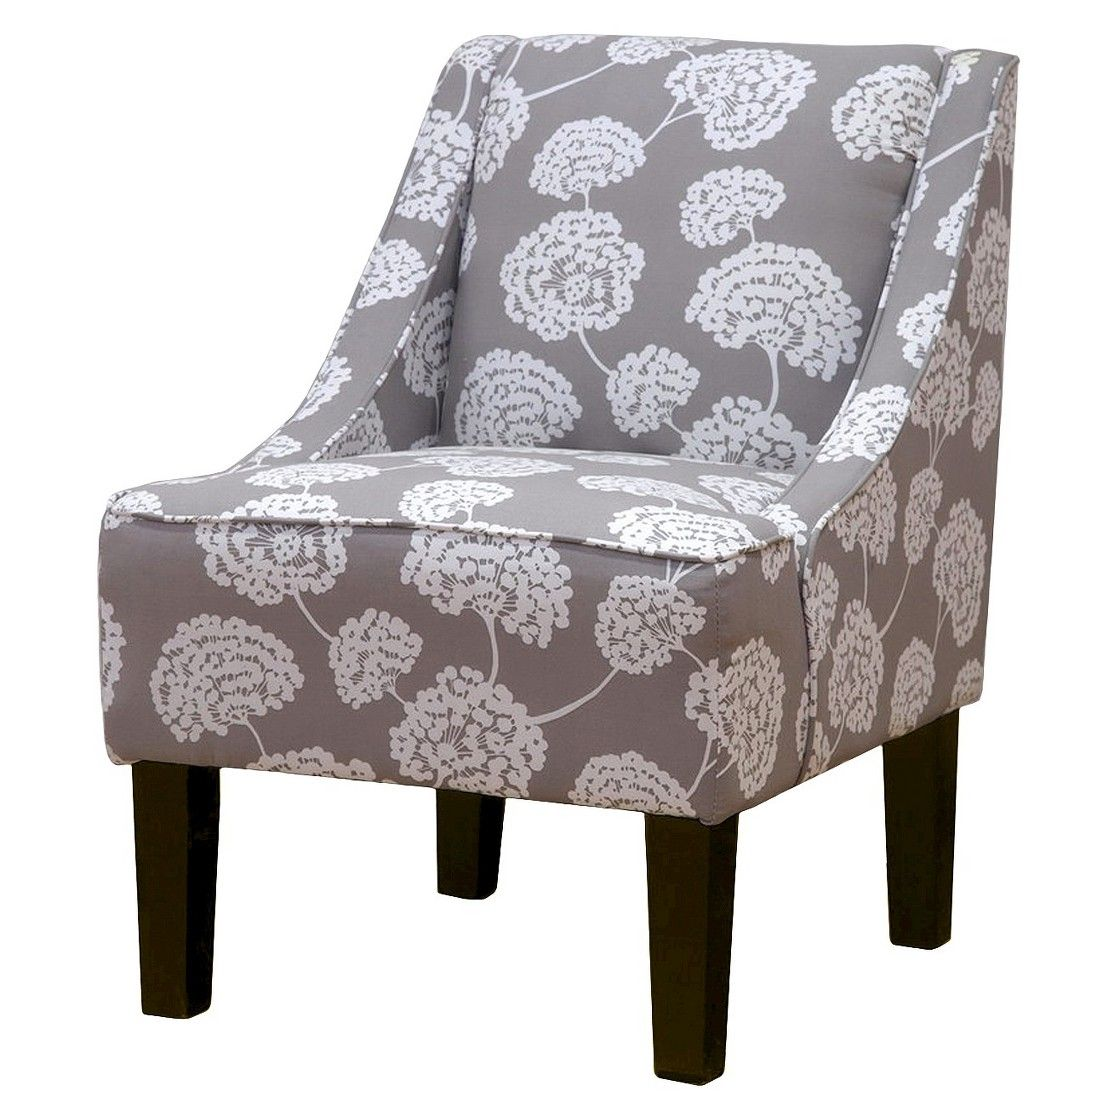 Hudson Swoop Chair Prints Furniture, Accent chairs for